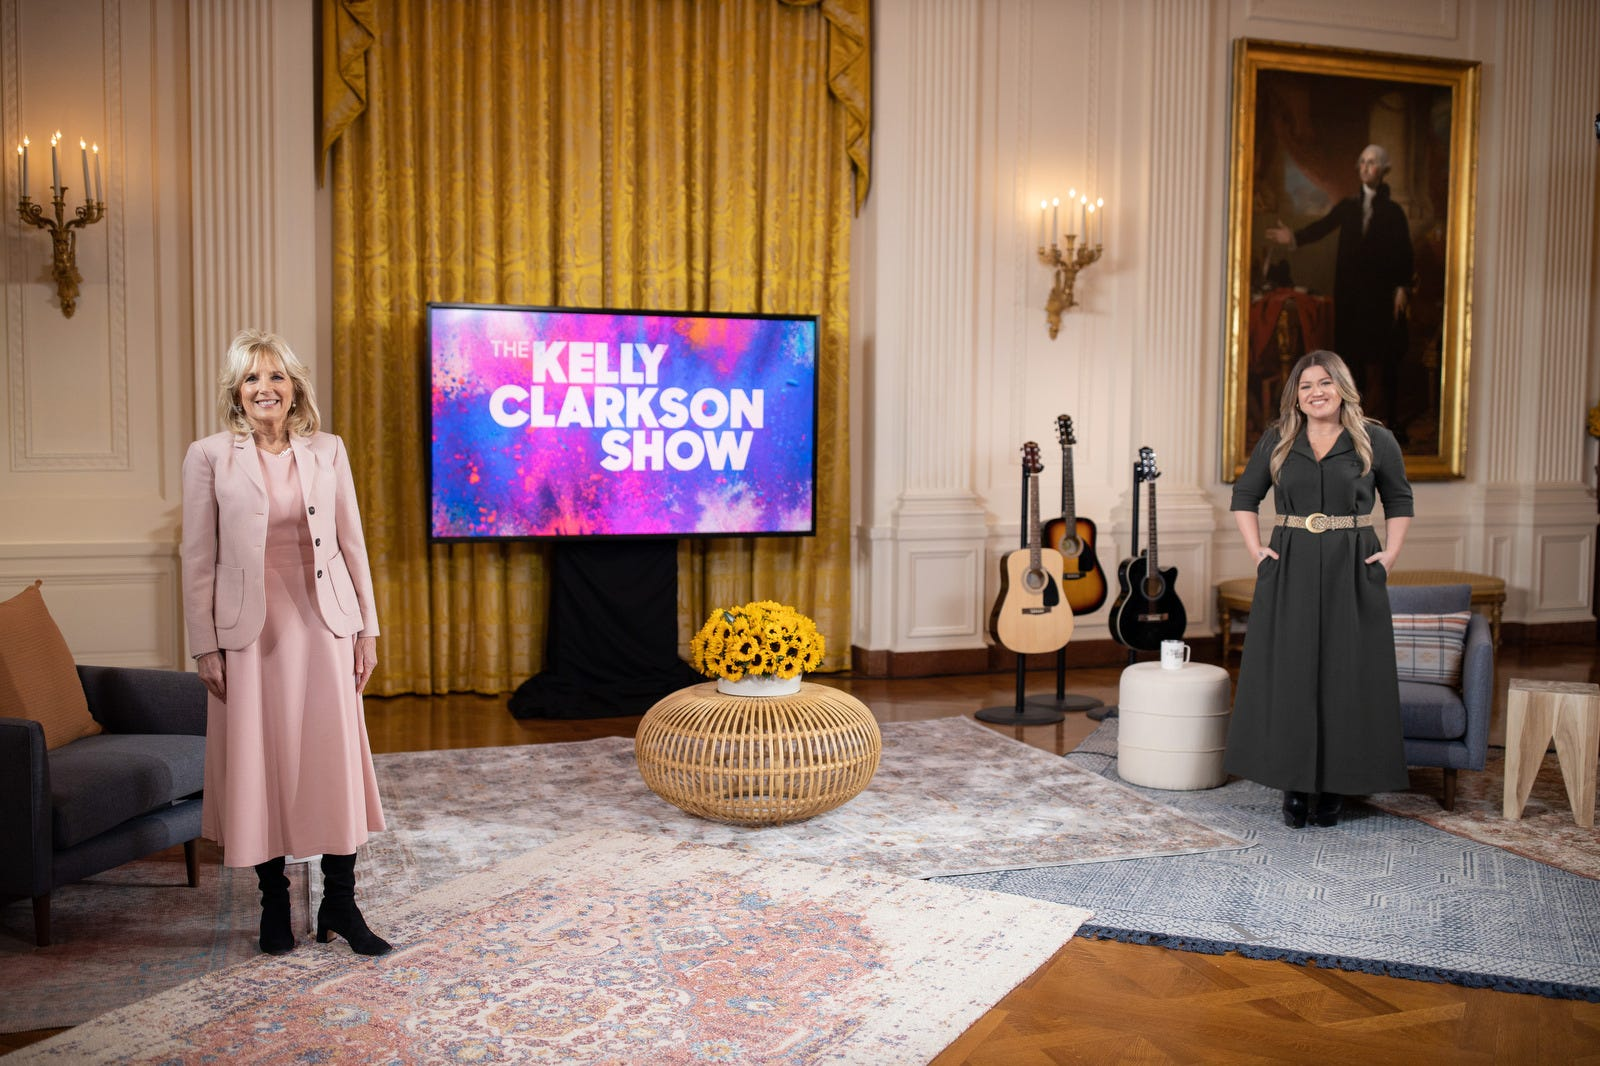 """First lady Jill Biden sat down with Kelly Clarkson for her first major TV interview, conducted in the East Room of the White House. Biden talked about her first marriage and divorce as part of her message of hope and unity in the episode of """"The Kelly Clarkson Show"""" that aired Feb. 25, 2021."""